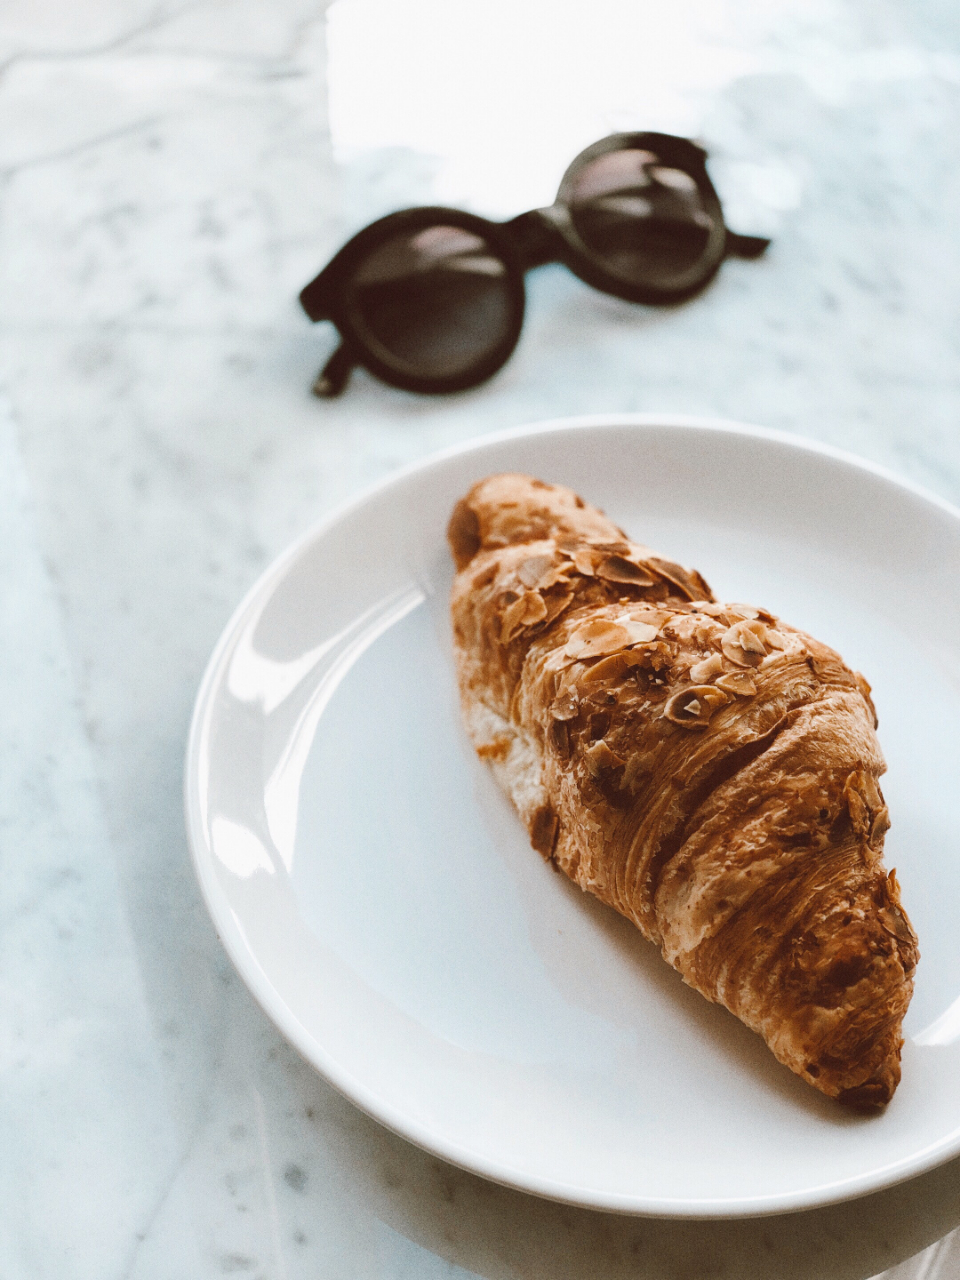 breakfast croissant sunglasses pastry food snack plate white